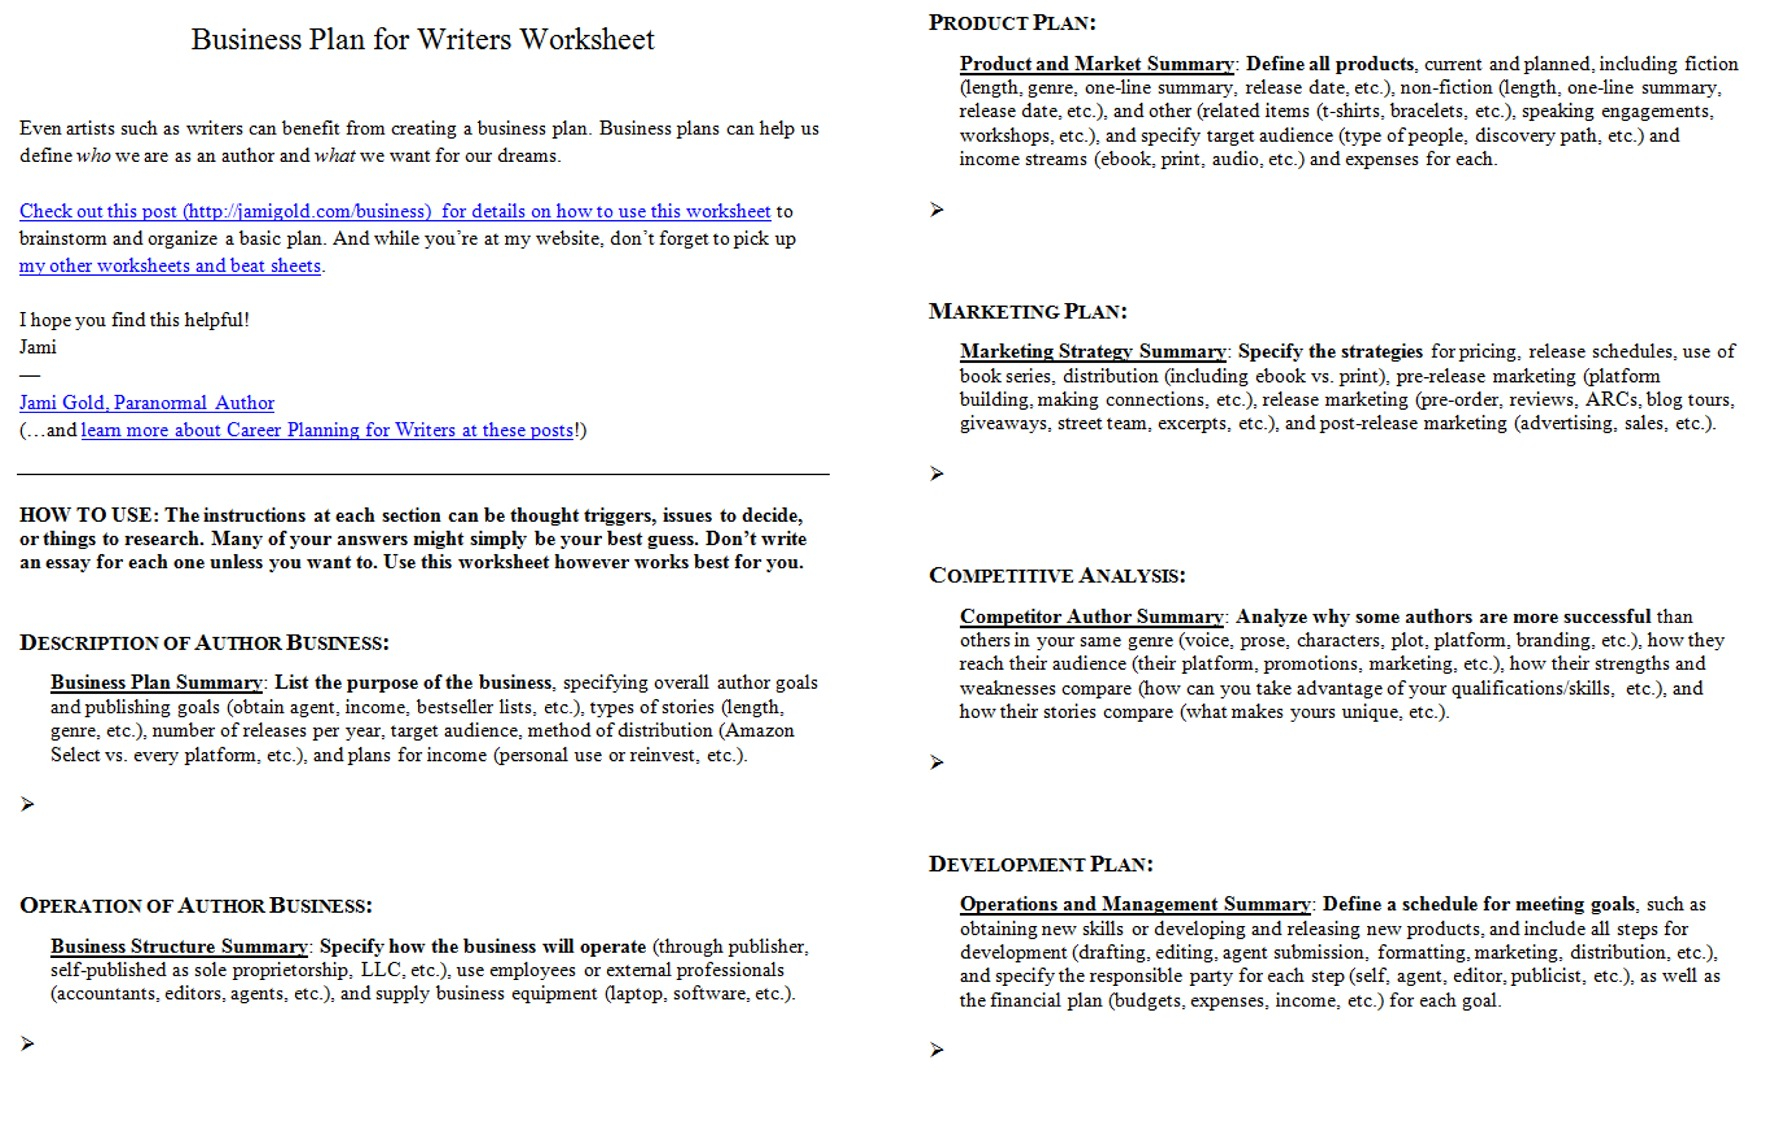 Aldiablosus  Pleasant Worksheets For Writers  Jami Gold Paranormal Author With Marvelous Screen Shot Of Both Pages Of The Business Plan For Writers Worksheet With Endearing Printable Worksheets Free Also Adjective Worksheets For Middle School In Addition Conversion Math Worksheets And Free Printable Worksheets For Prek Students As Well As Reflections Rotations And Translations Worksheets Additionally First Reconciliation Worksheets From Jamigoldcom With Aldiablosus  Marvelous Worksheets For Writers  Jami Gold Paranormal Author With Endearing Screen Shot Of Both Pages Of The Business Plan For Writers Worksheet And Pleasant Printable Worksheets Free Also Adjective Worksheets For Middle School In Addition Conversion Math Worksheets From Jamigoldcom